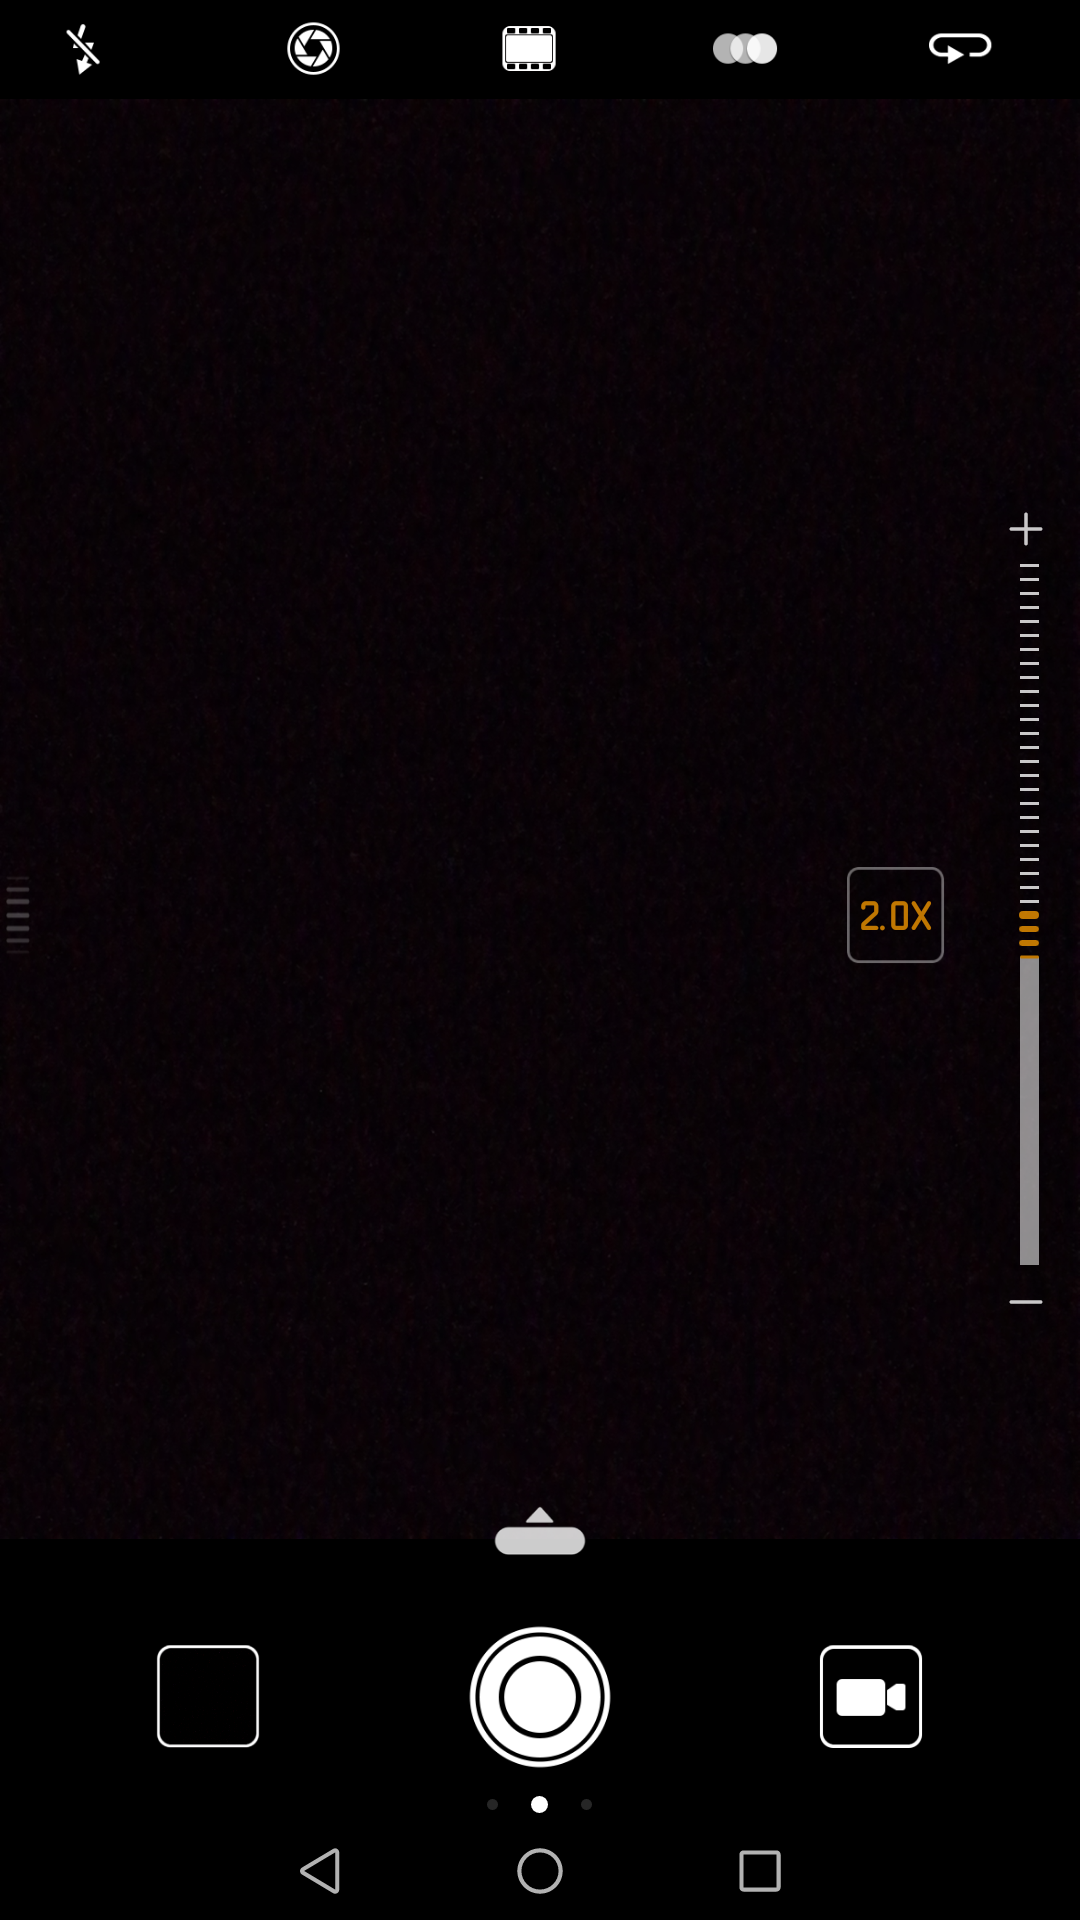 Up to 2x Hybrid zoom is indicated by the solid line. the broken line is where digital zoom starts.